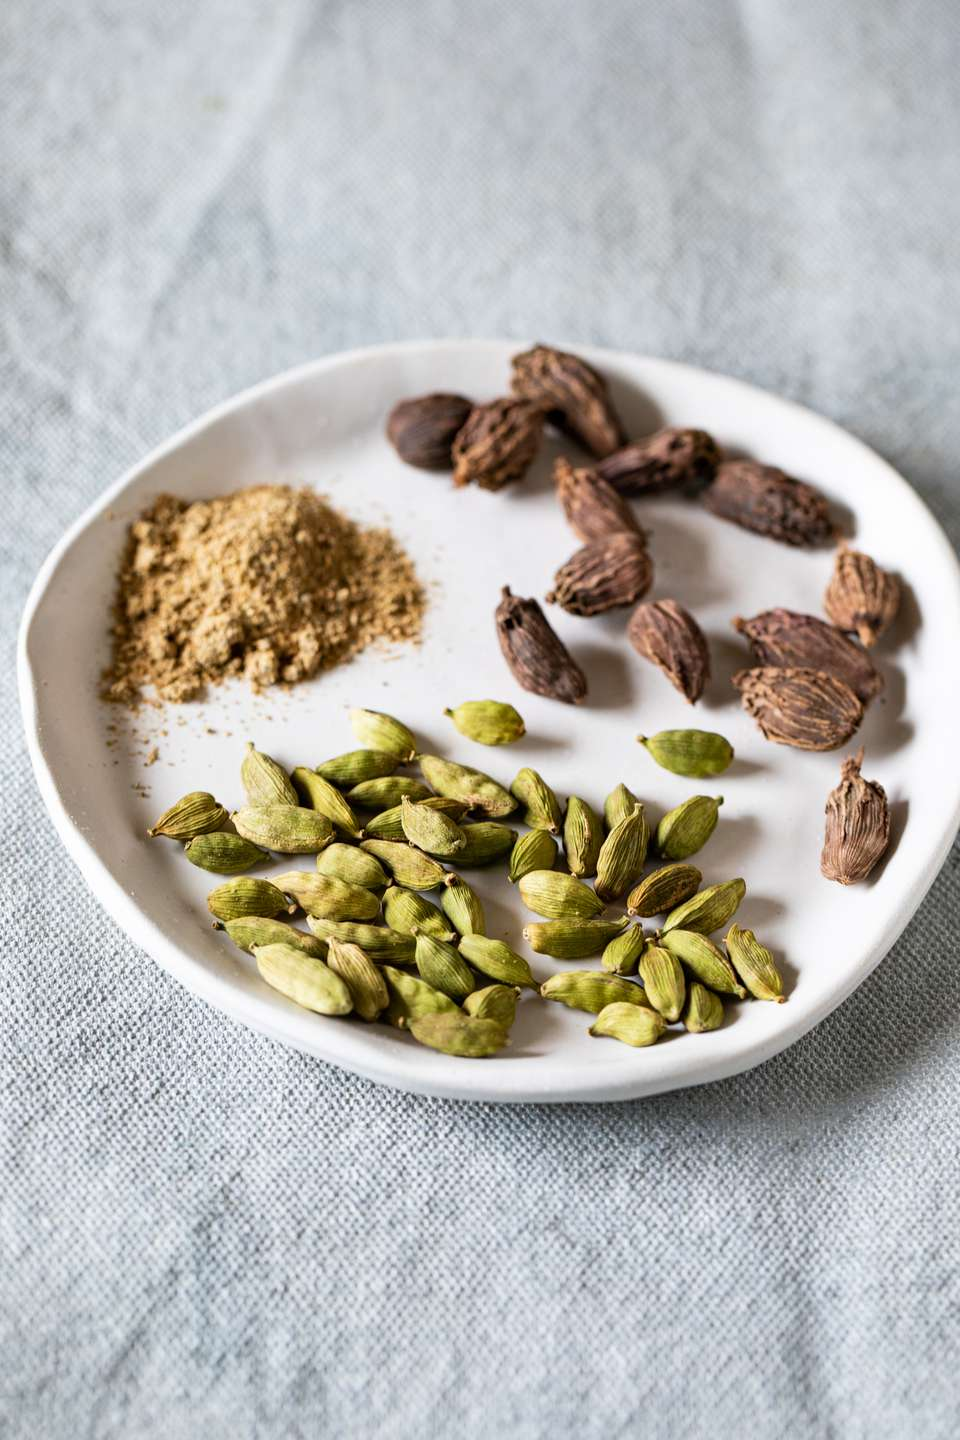 Ground cardamom and green and brown cardamom pods on a white plate